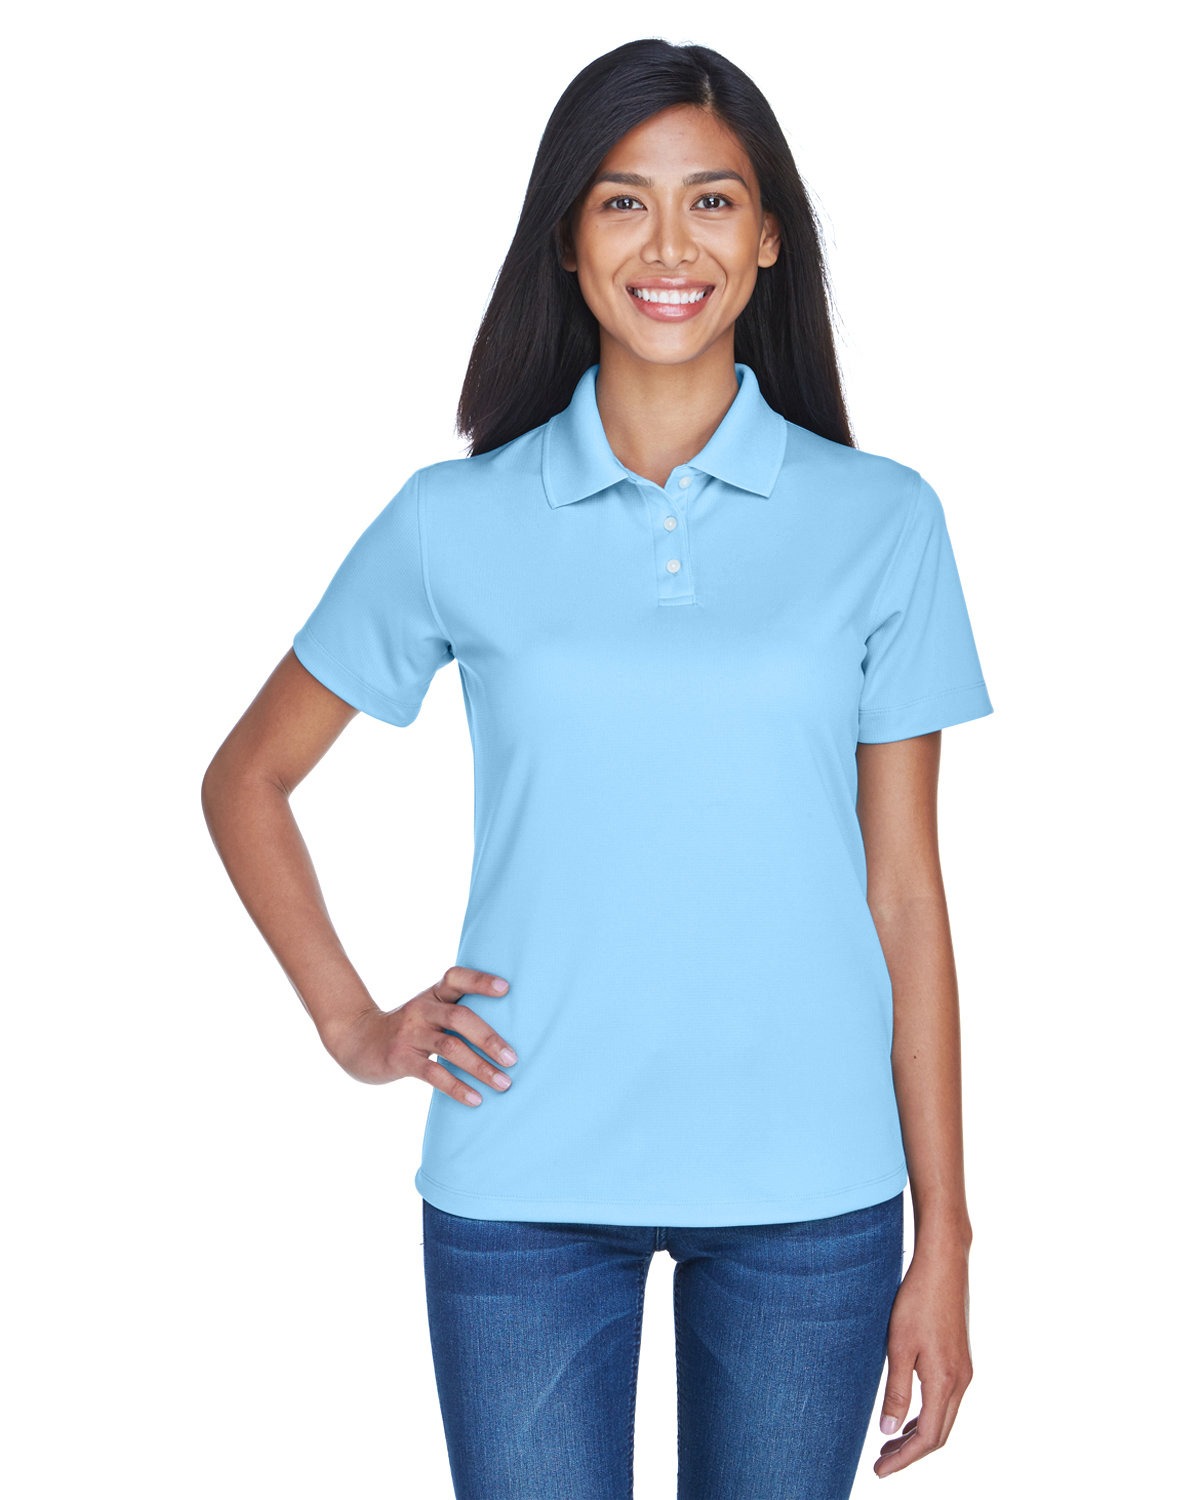 UltraClub Ladies' Cool & Dry Stain-Release Performance Polo COLUMBIA BLUE